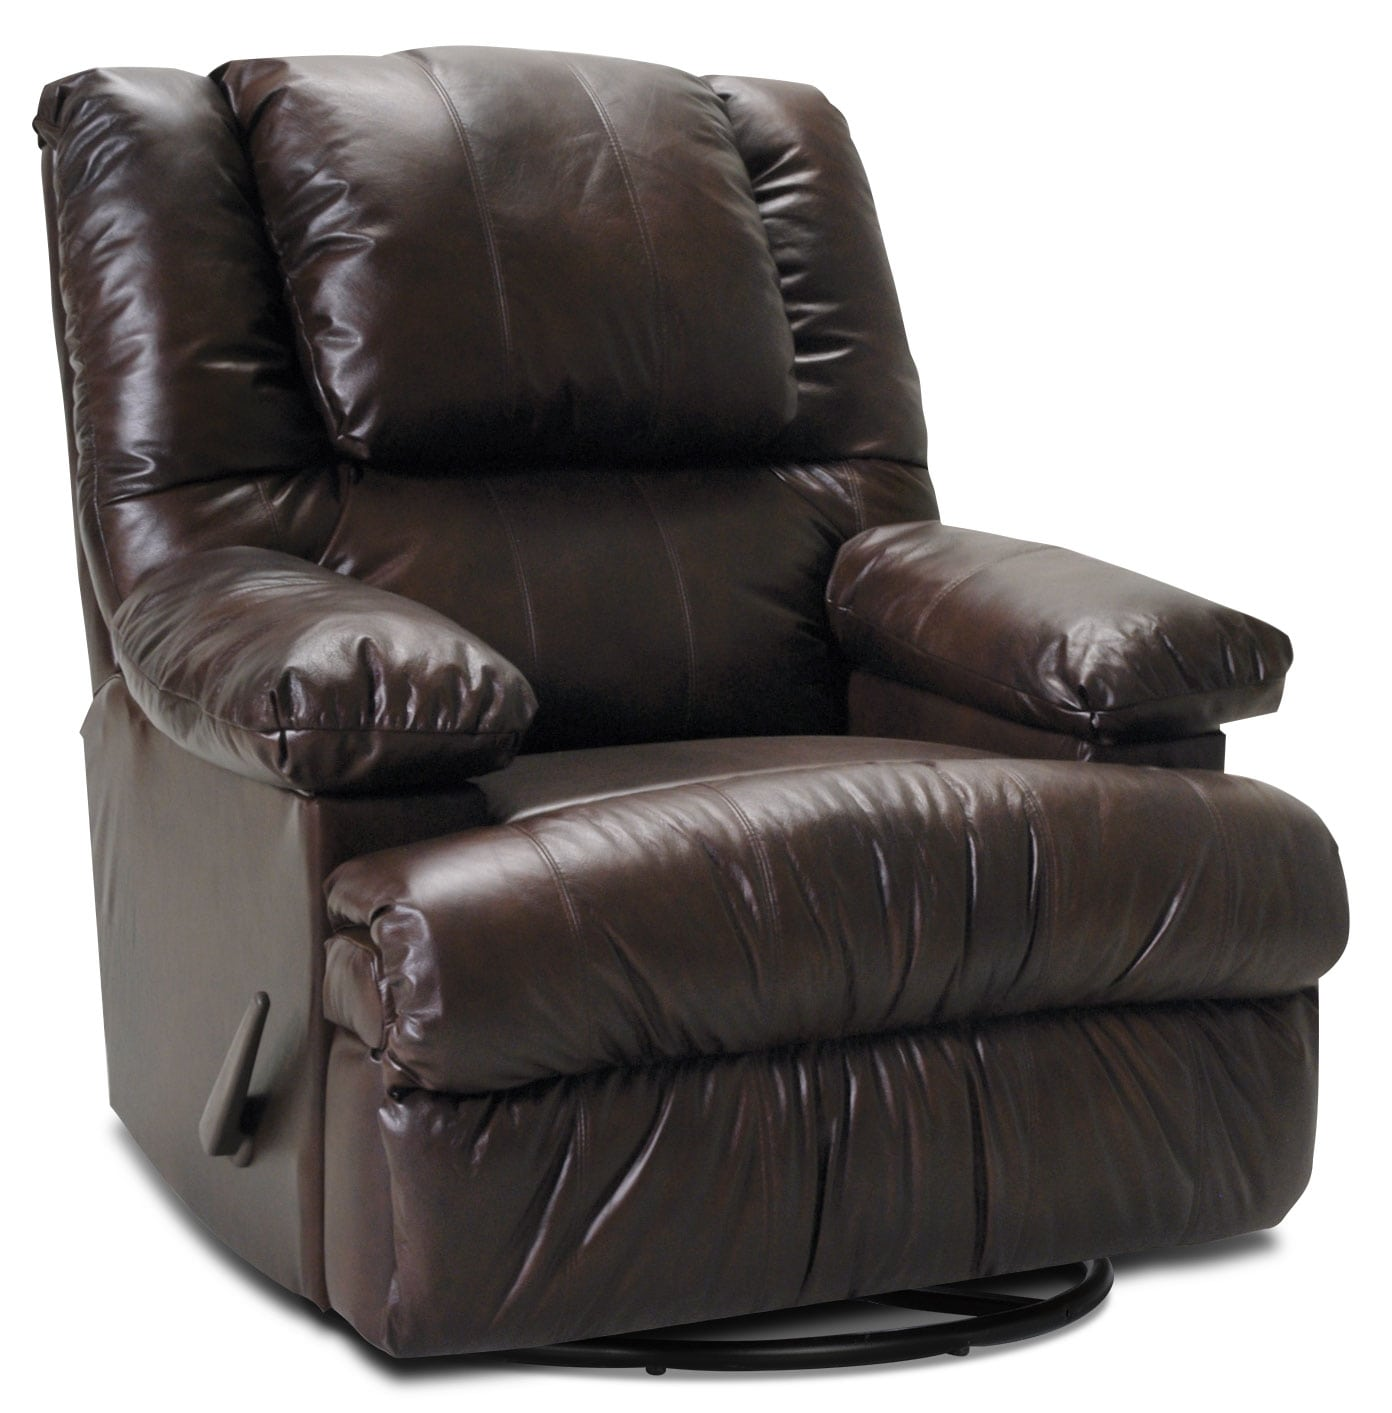 Designed2b recliner 5598 genuine leather swivel rocker for Leather recliners